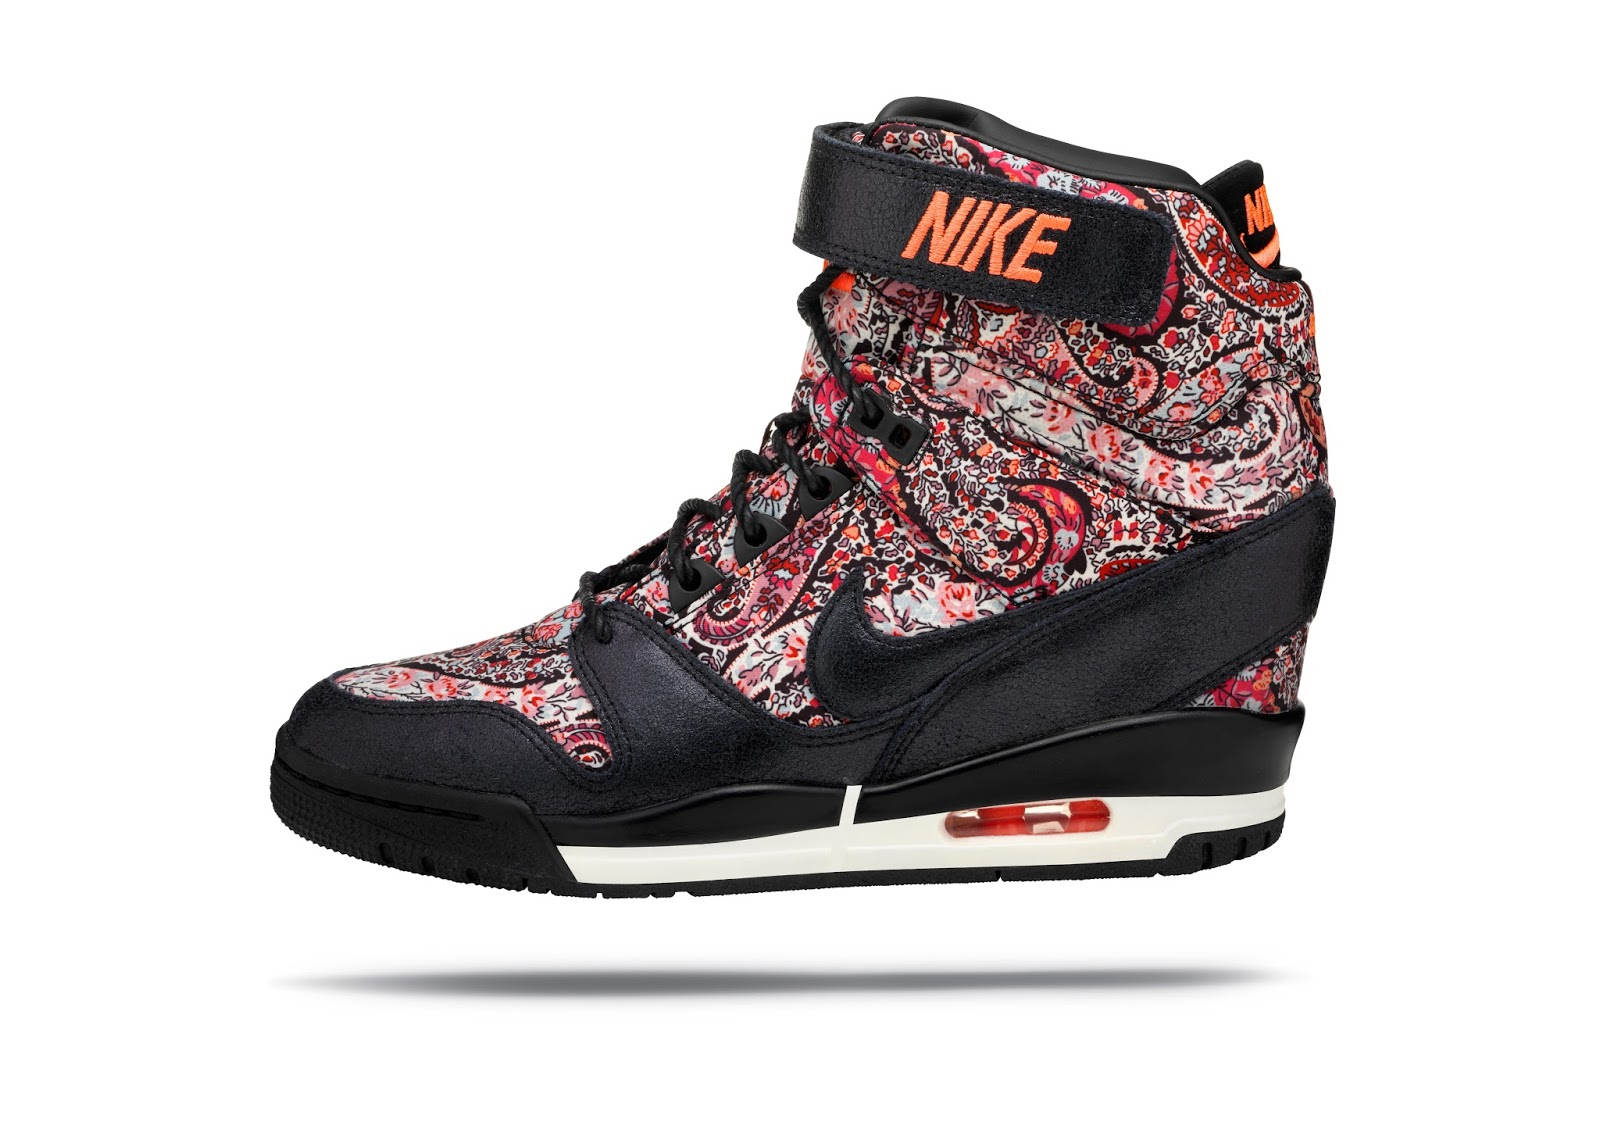 lyra mag nike and liberty prints dazzling collaborations